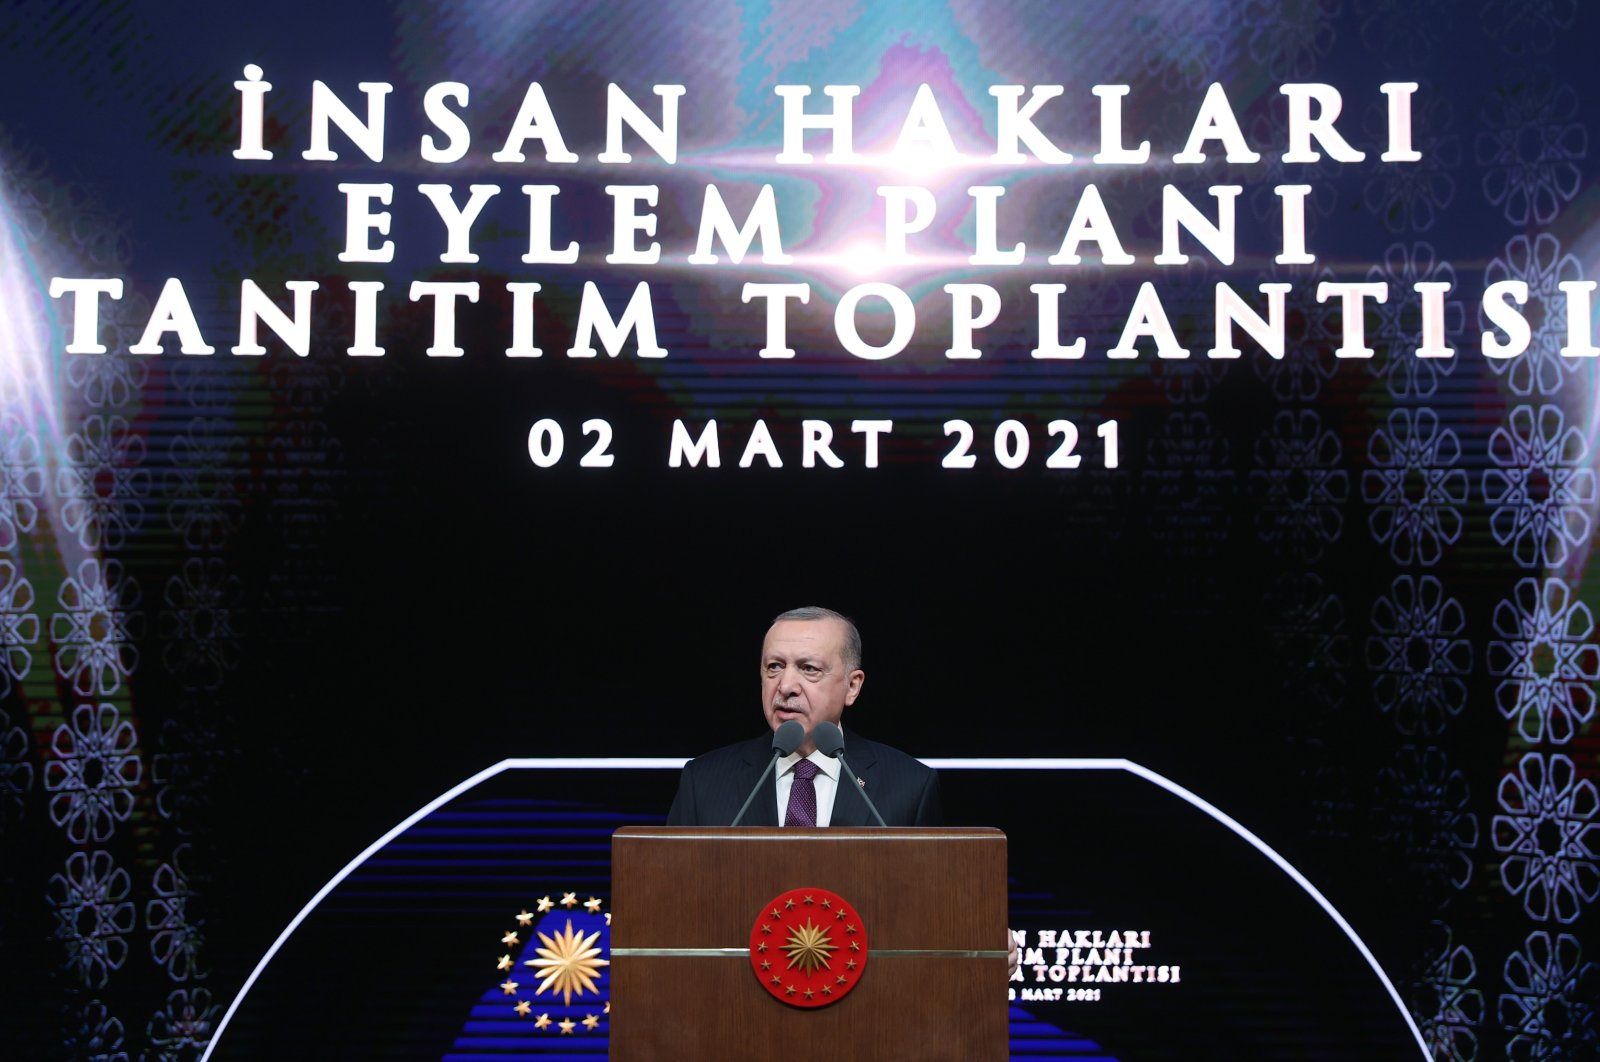 President Recep Tayyip Erdoğan speaks at the Human Rights Action Plan introductory meeting in Ankara, Turkey, March 2, 2021. (AA Photo)